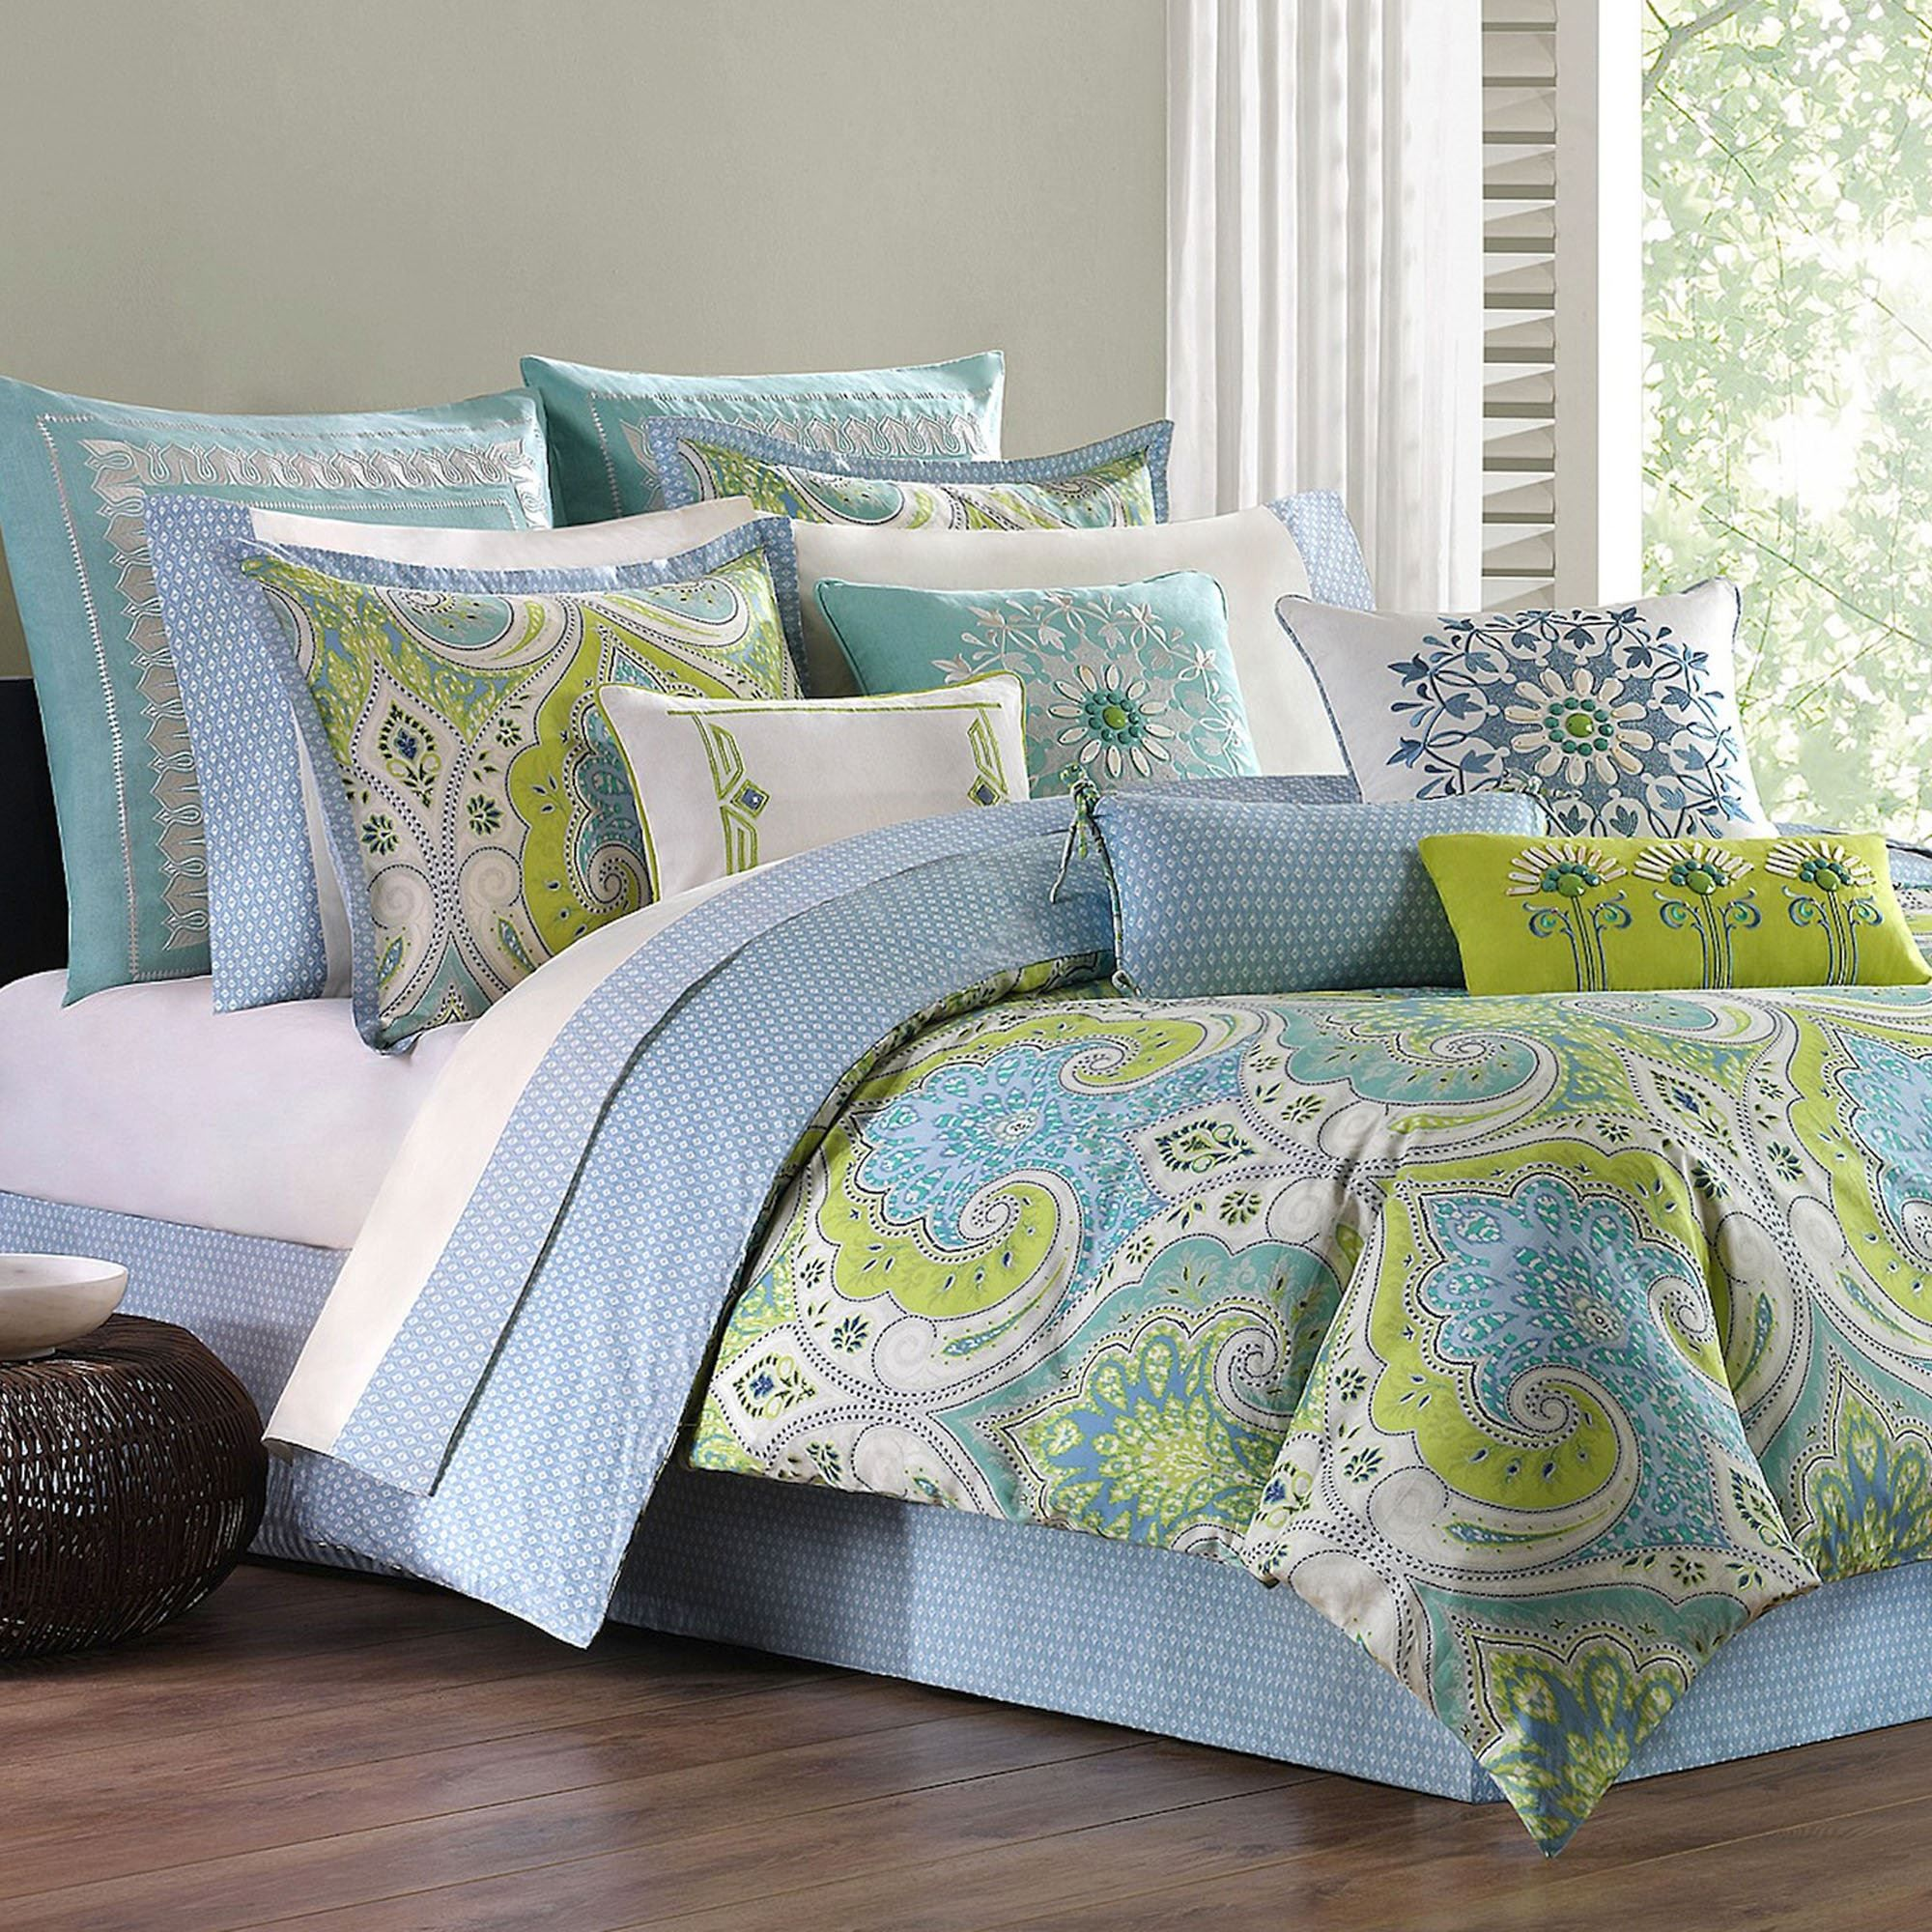 set comforter your belcourt cover paisley worldly pin look the gives a collection king to harbor duvet house